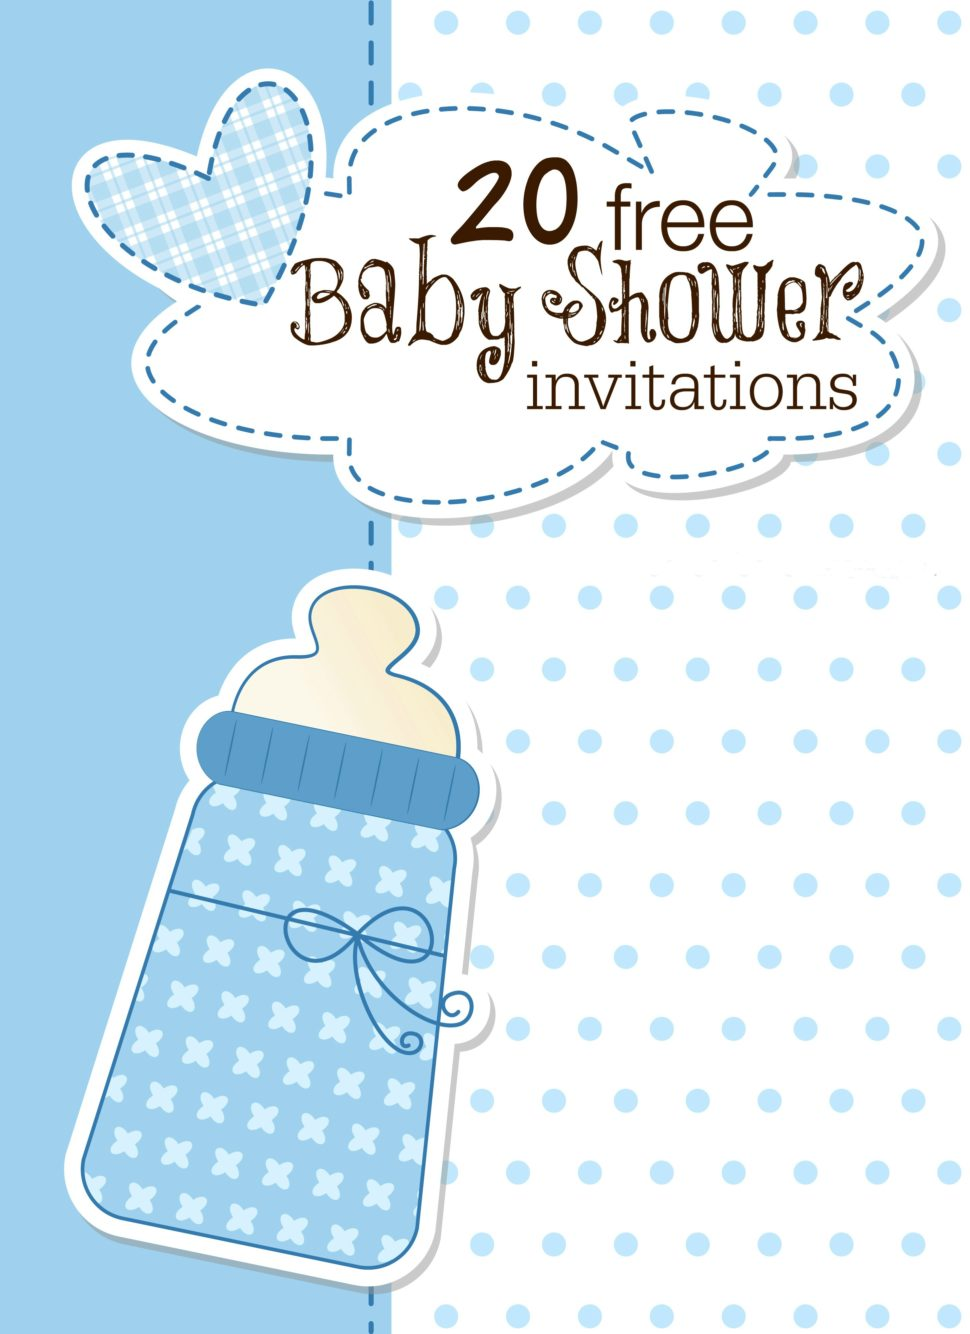 Medium Size of Baby Shower:baby Shower Invitations Nautical Baby Shower Invitations For Boys Baby Girl Themes For Bedroom Baby Shower Ideas Baby Shower Decorations Themes For Baby Girl Nursery